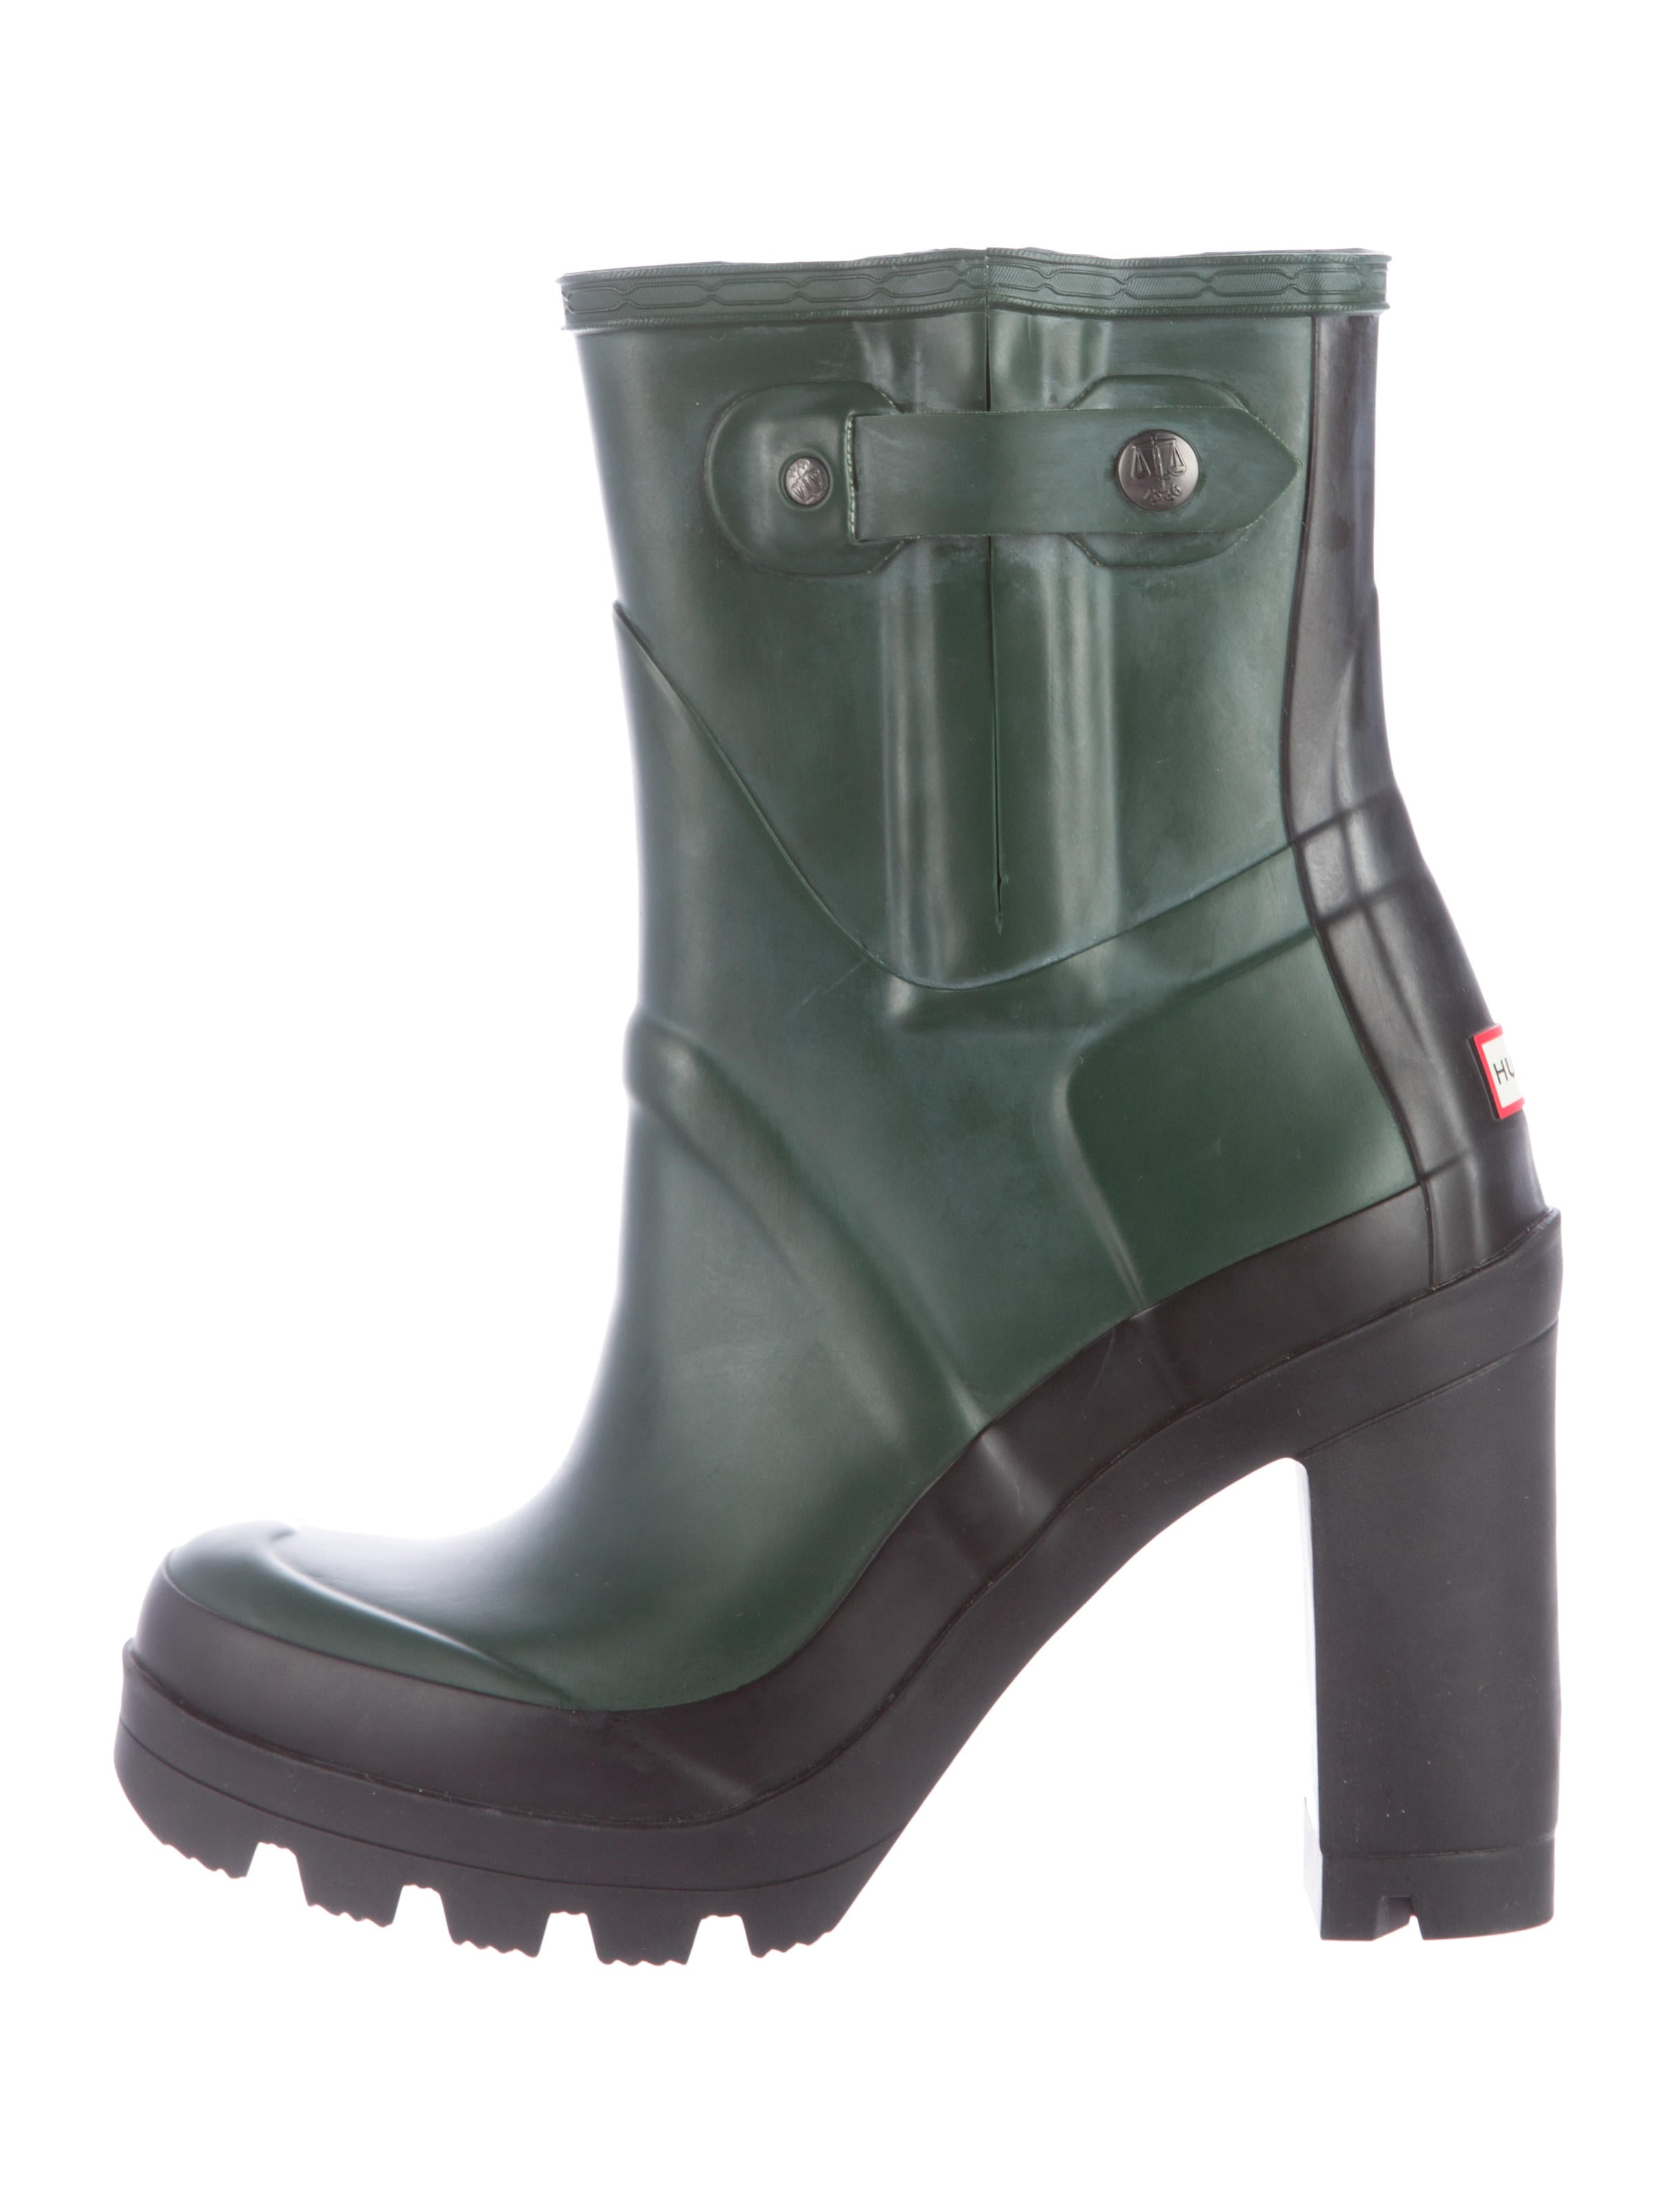 Hunter Rubber Ankle Boots - Shoes - WH821074 | The RealReal